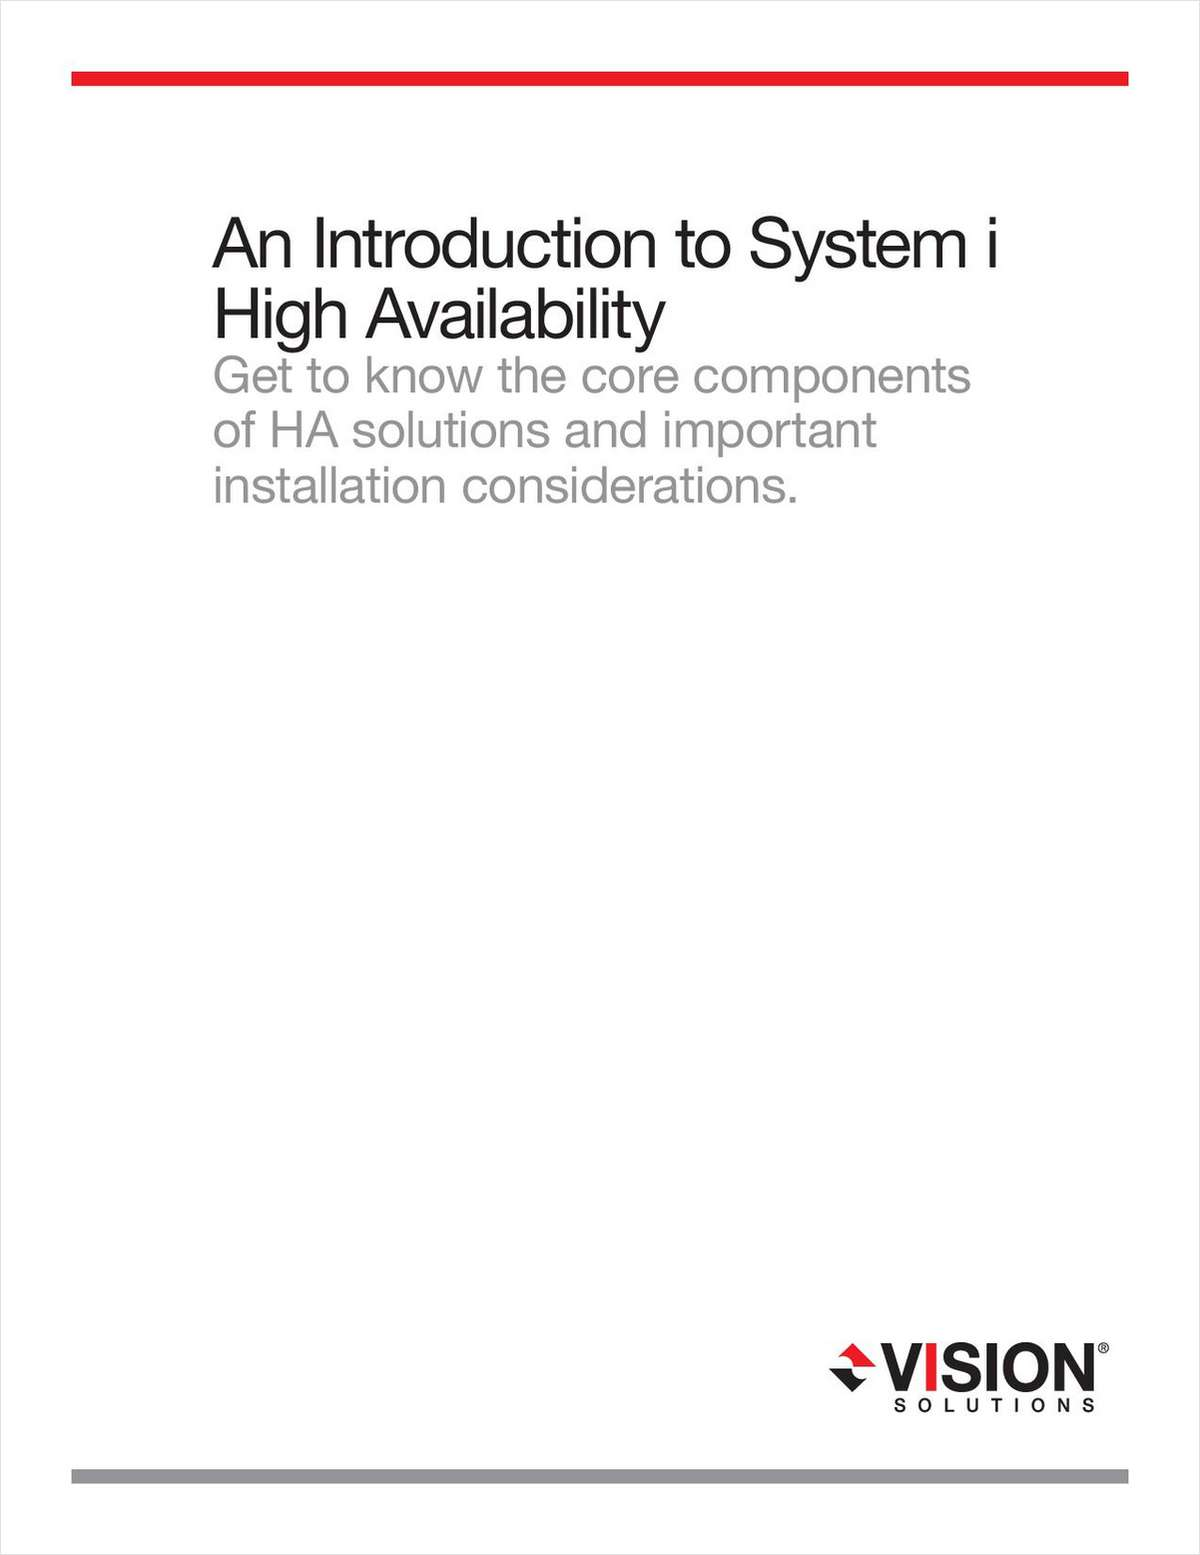 An Introduction to IBM System i (iSeries) High Availability Solutions